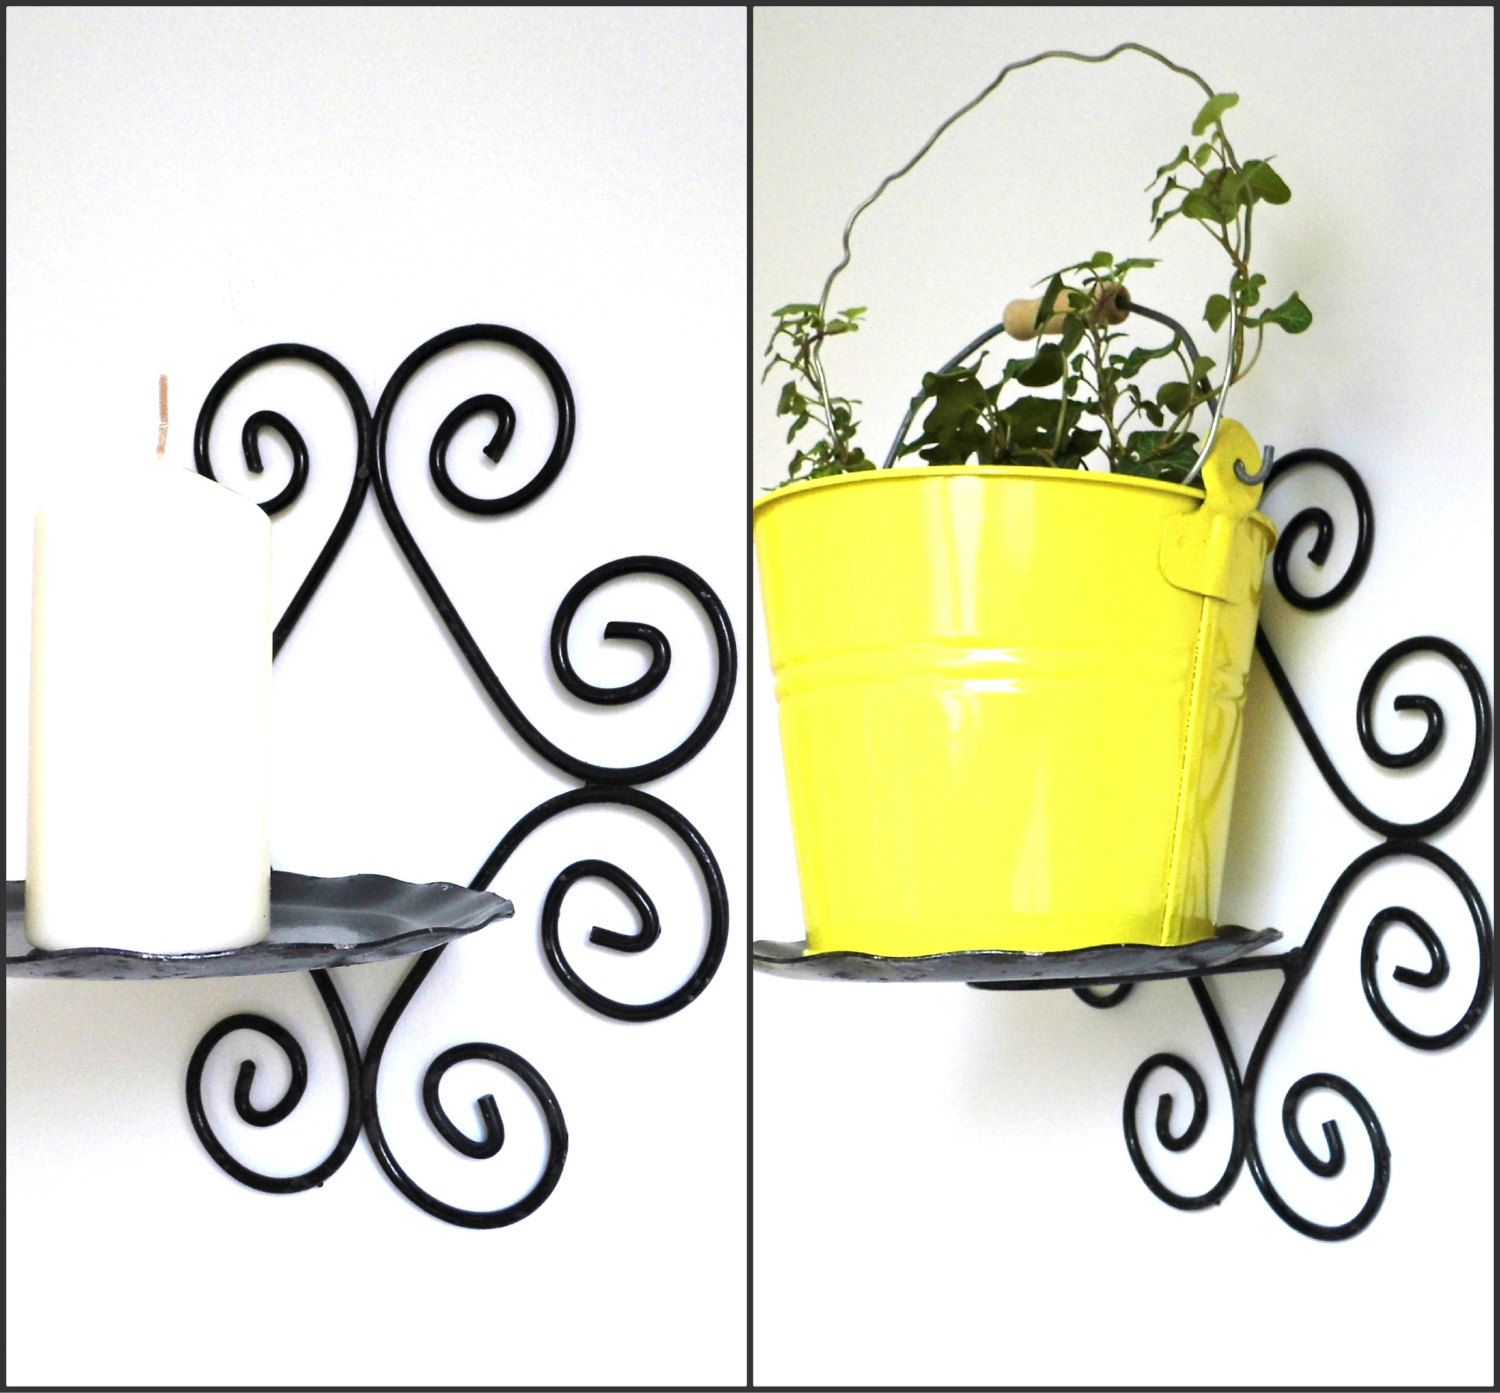 Vintage Rustic Wall Metal Planter Holder Plant Pot Candle Sconce Black Cast Iron Hanging Mounted Rusty Pocket Metal Planters Rustic Candle Sconce Rustic Walls